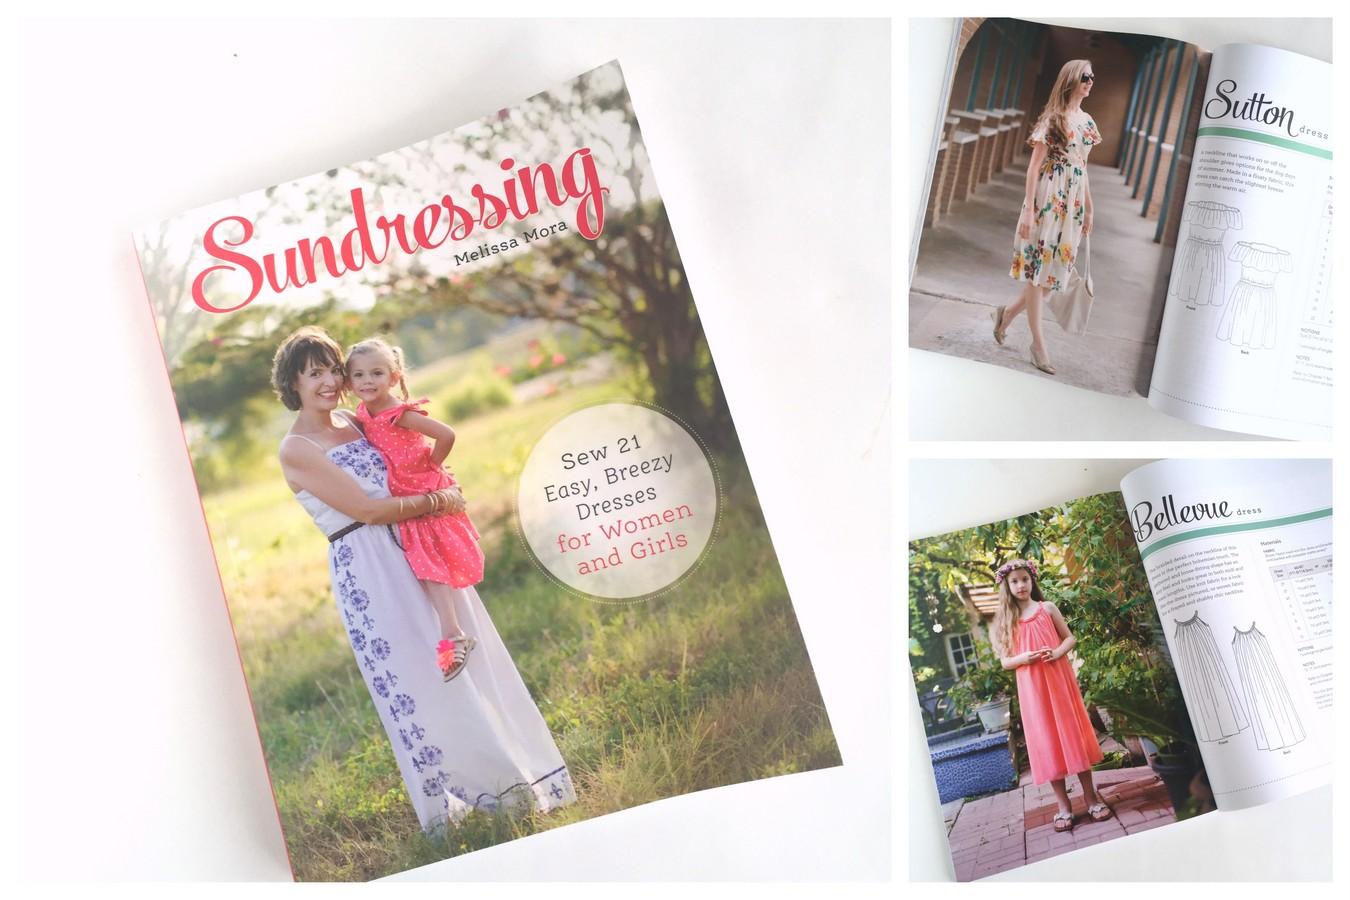 Sundressing book by Melissa Mora